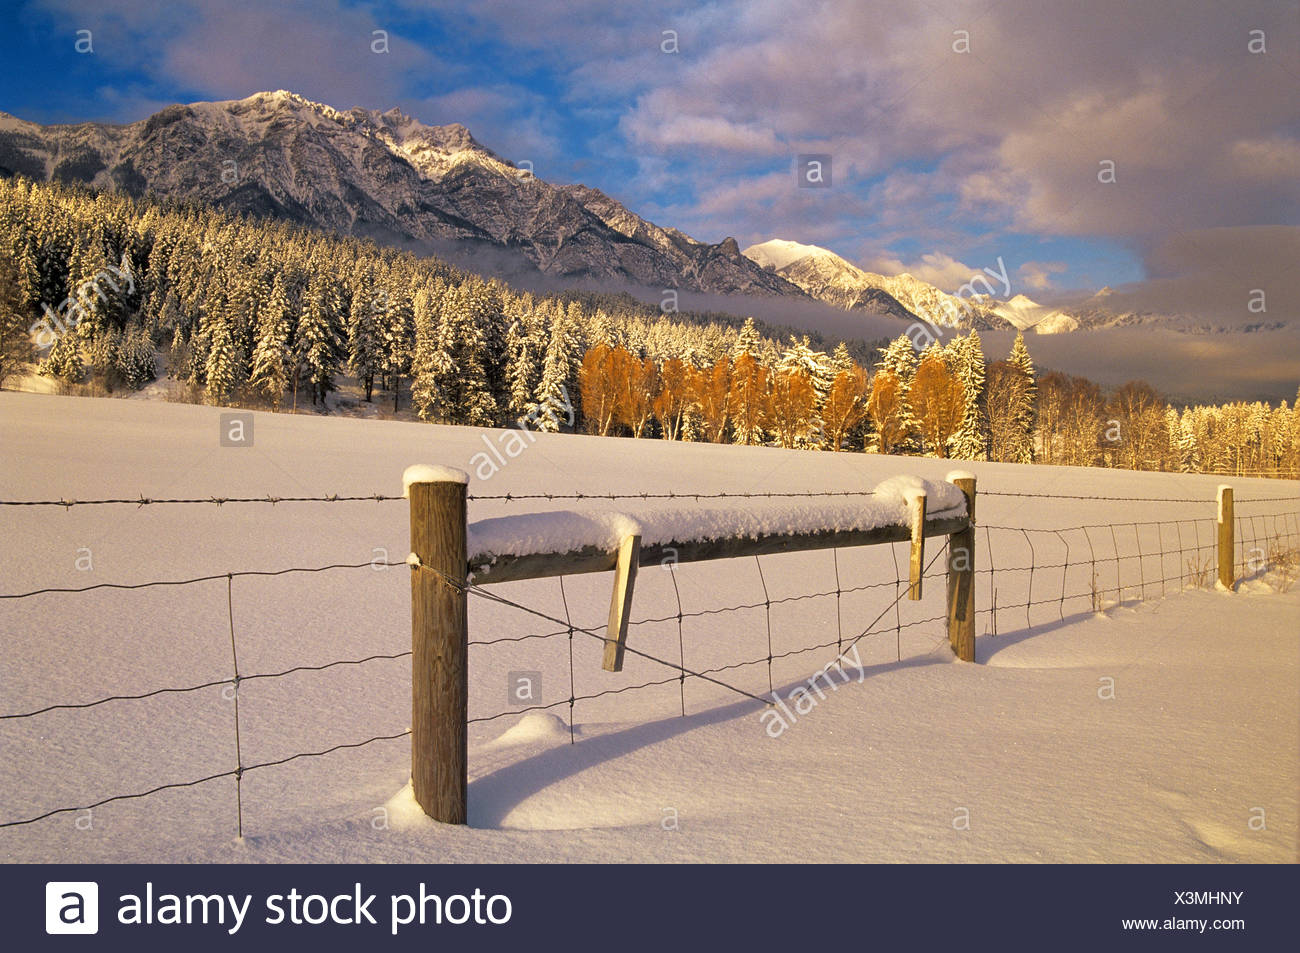 winter with fence and farmland at edge of Canadian Rocky Mountains  Edgewater British Columbia Canada - Stock Image